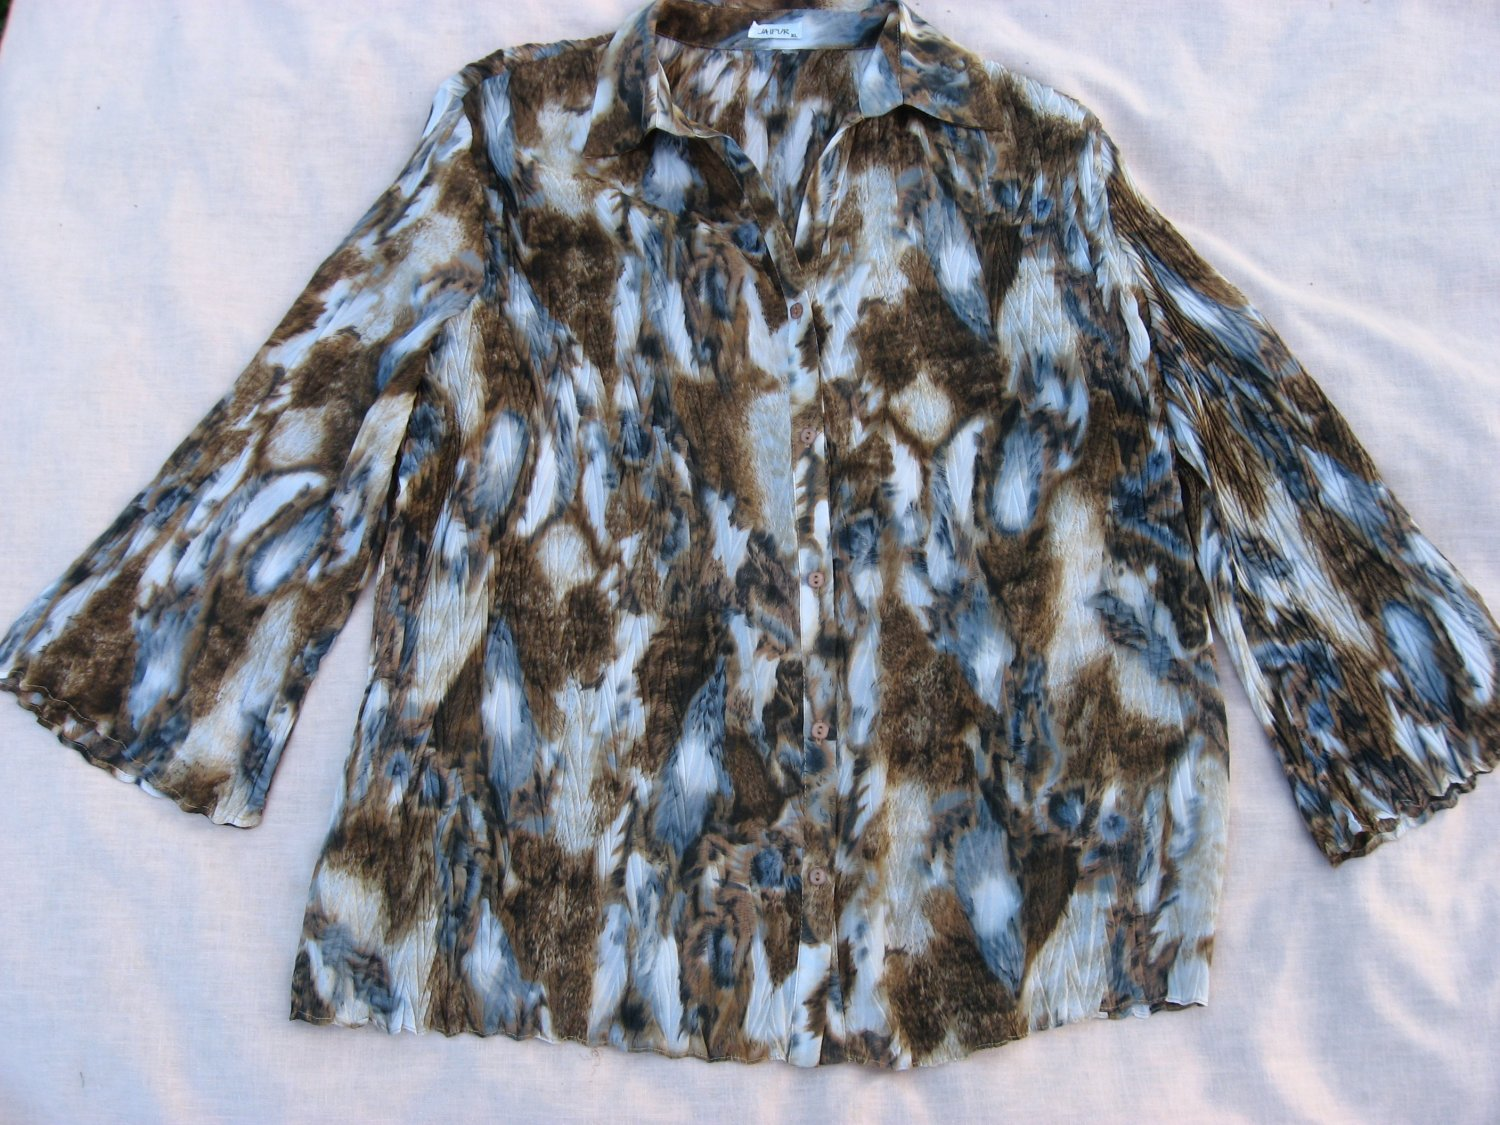 Jaipur Blouse XL 52 Chest Texture Pleat Abstract Pattern Shirt Top